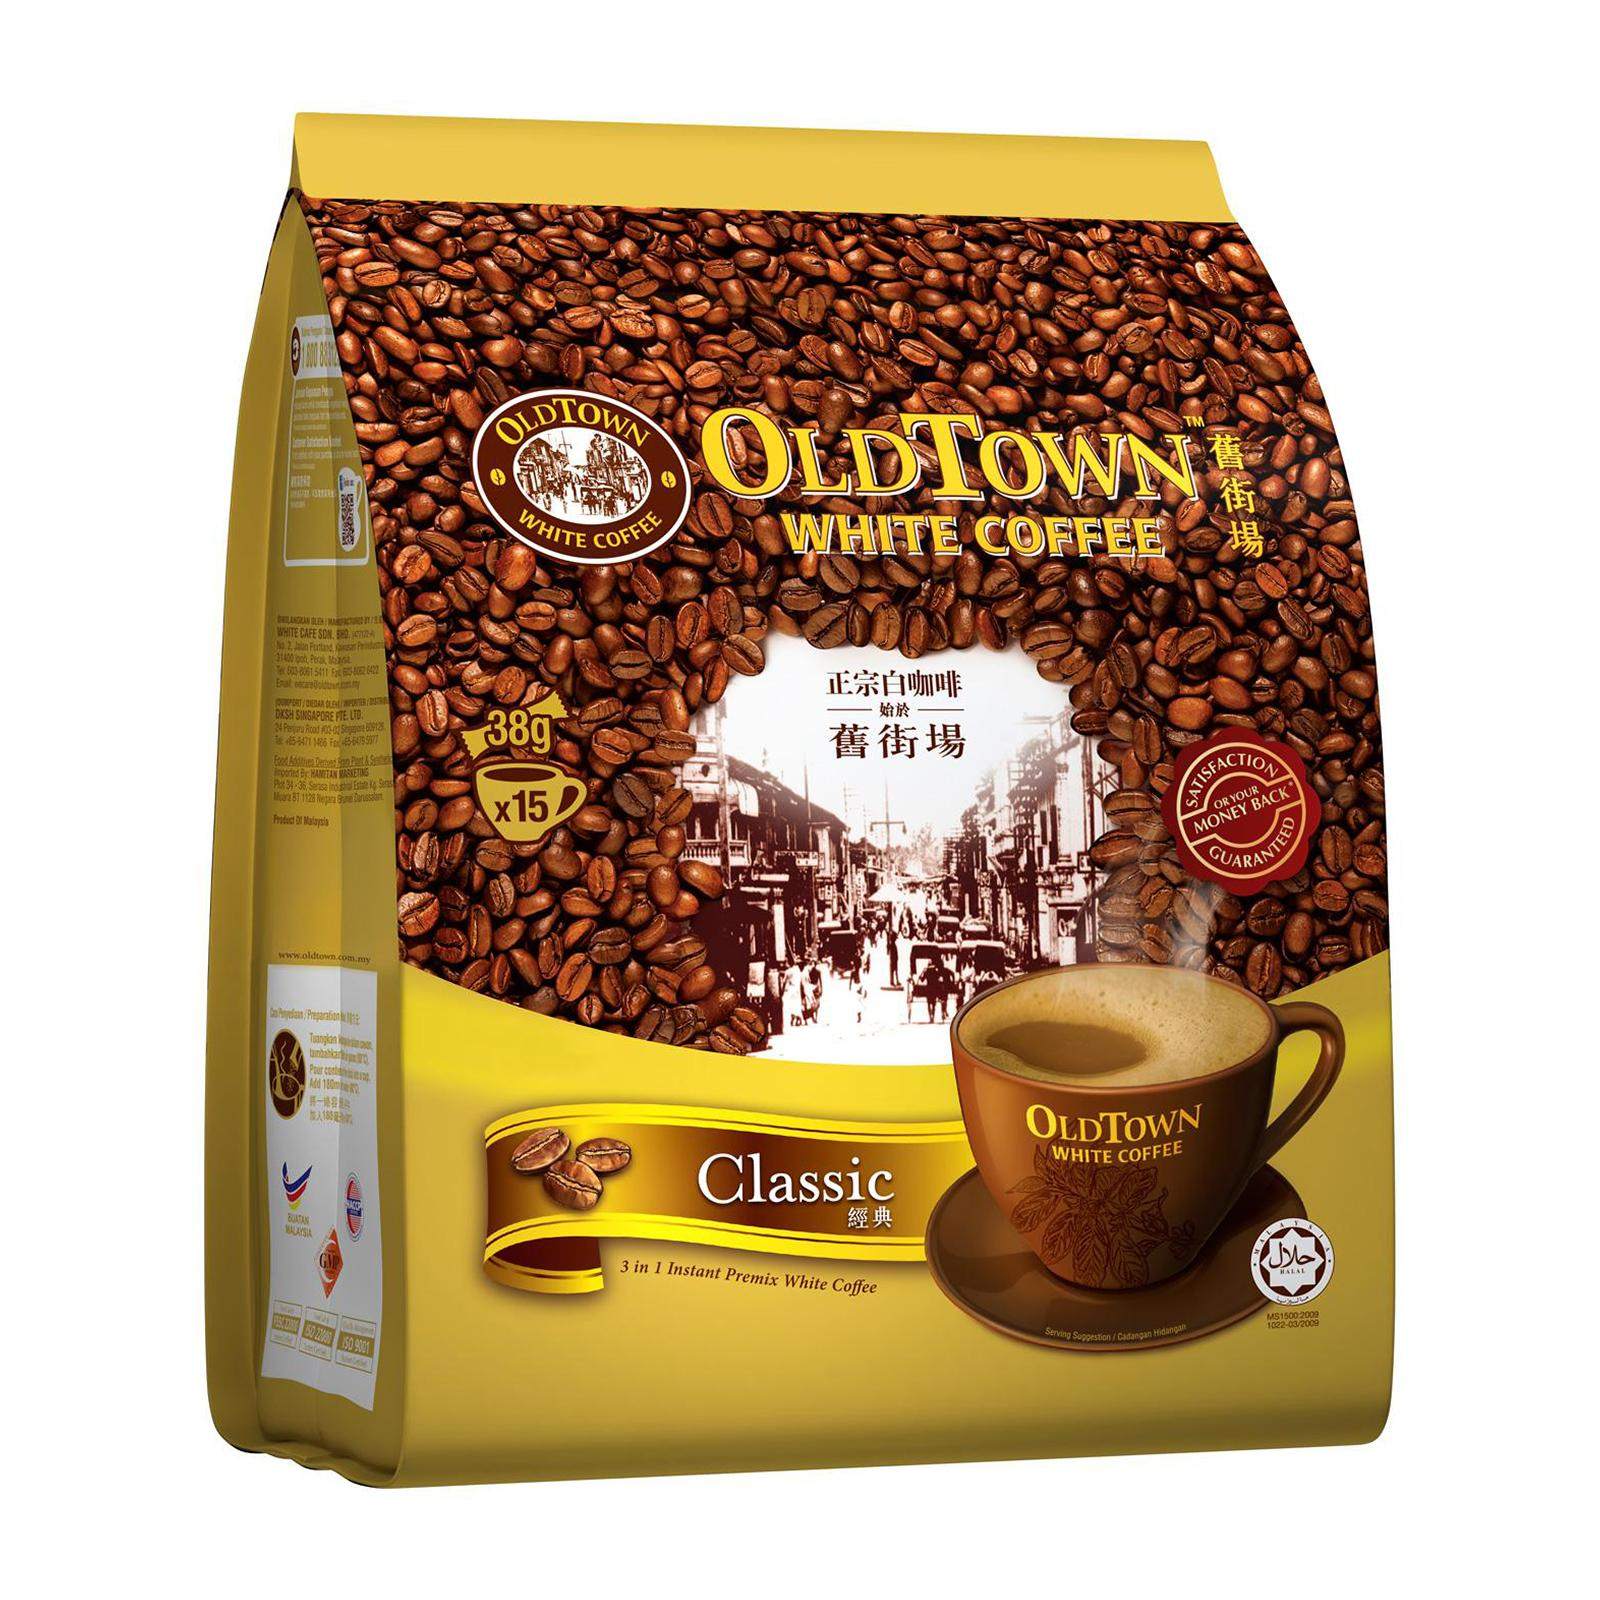 OLD TOWN White Coffee 3 in 1 Classic 15sX38g